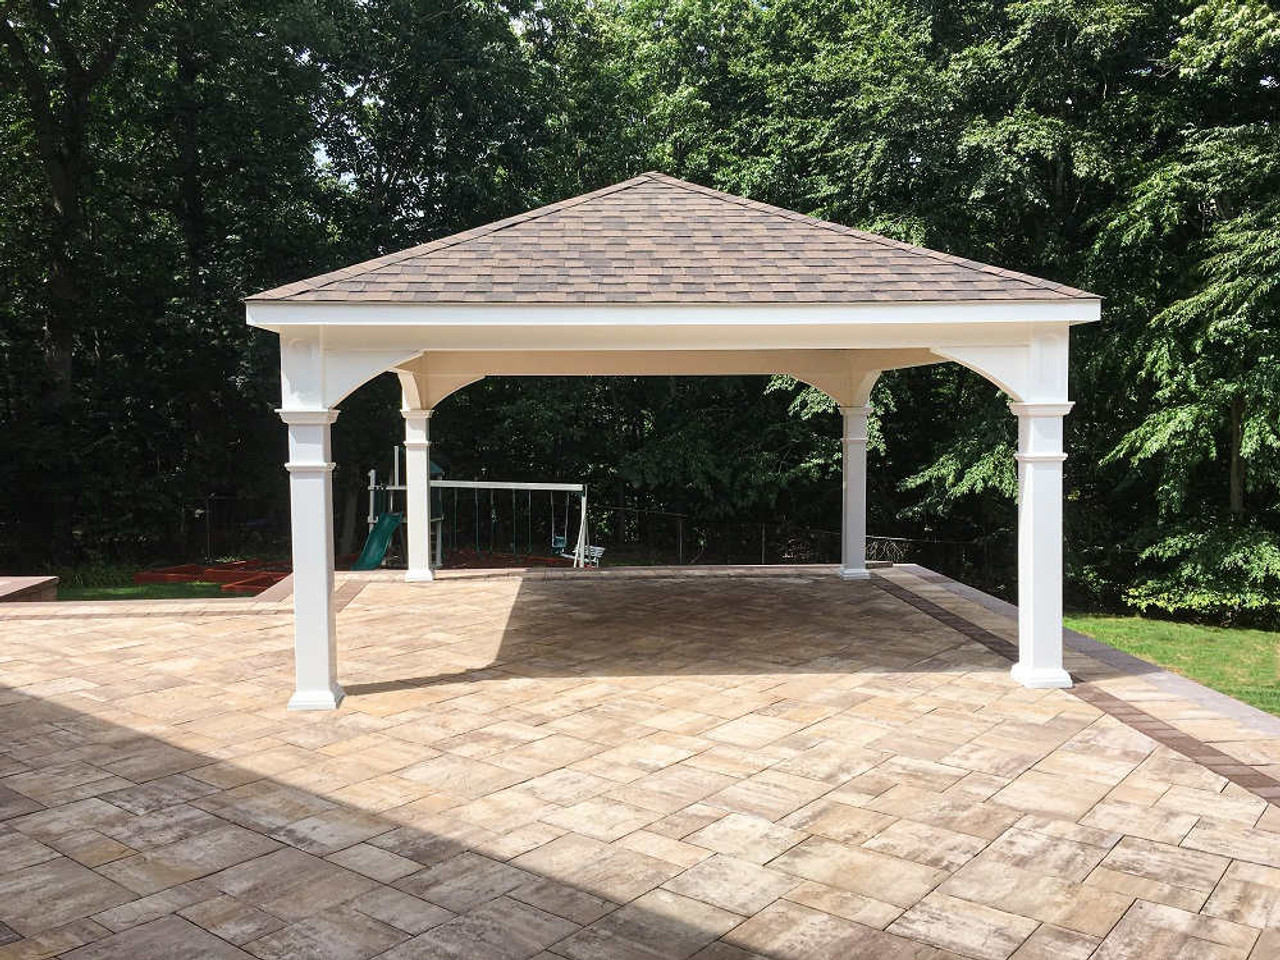 16x16 Vinyl hip roof pavilion on elevated back patio, Woodbury NY